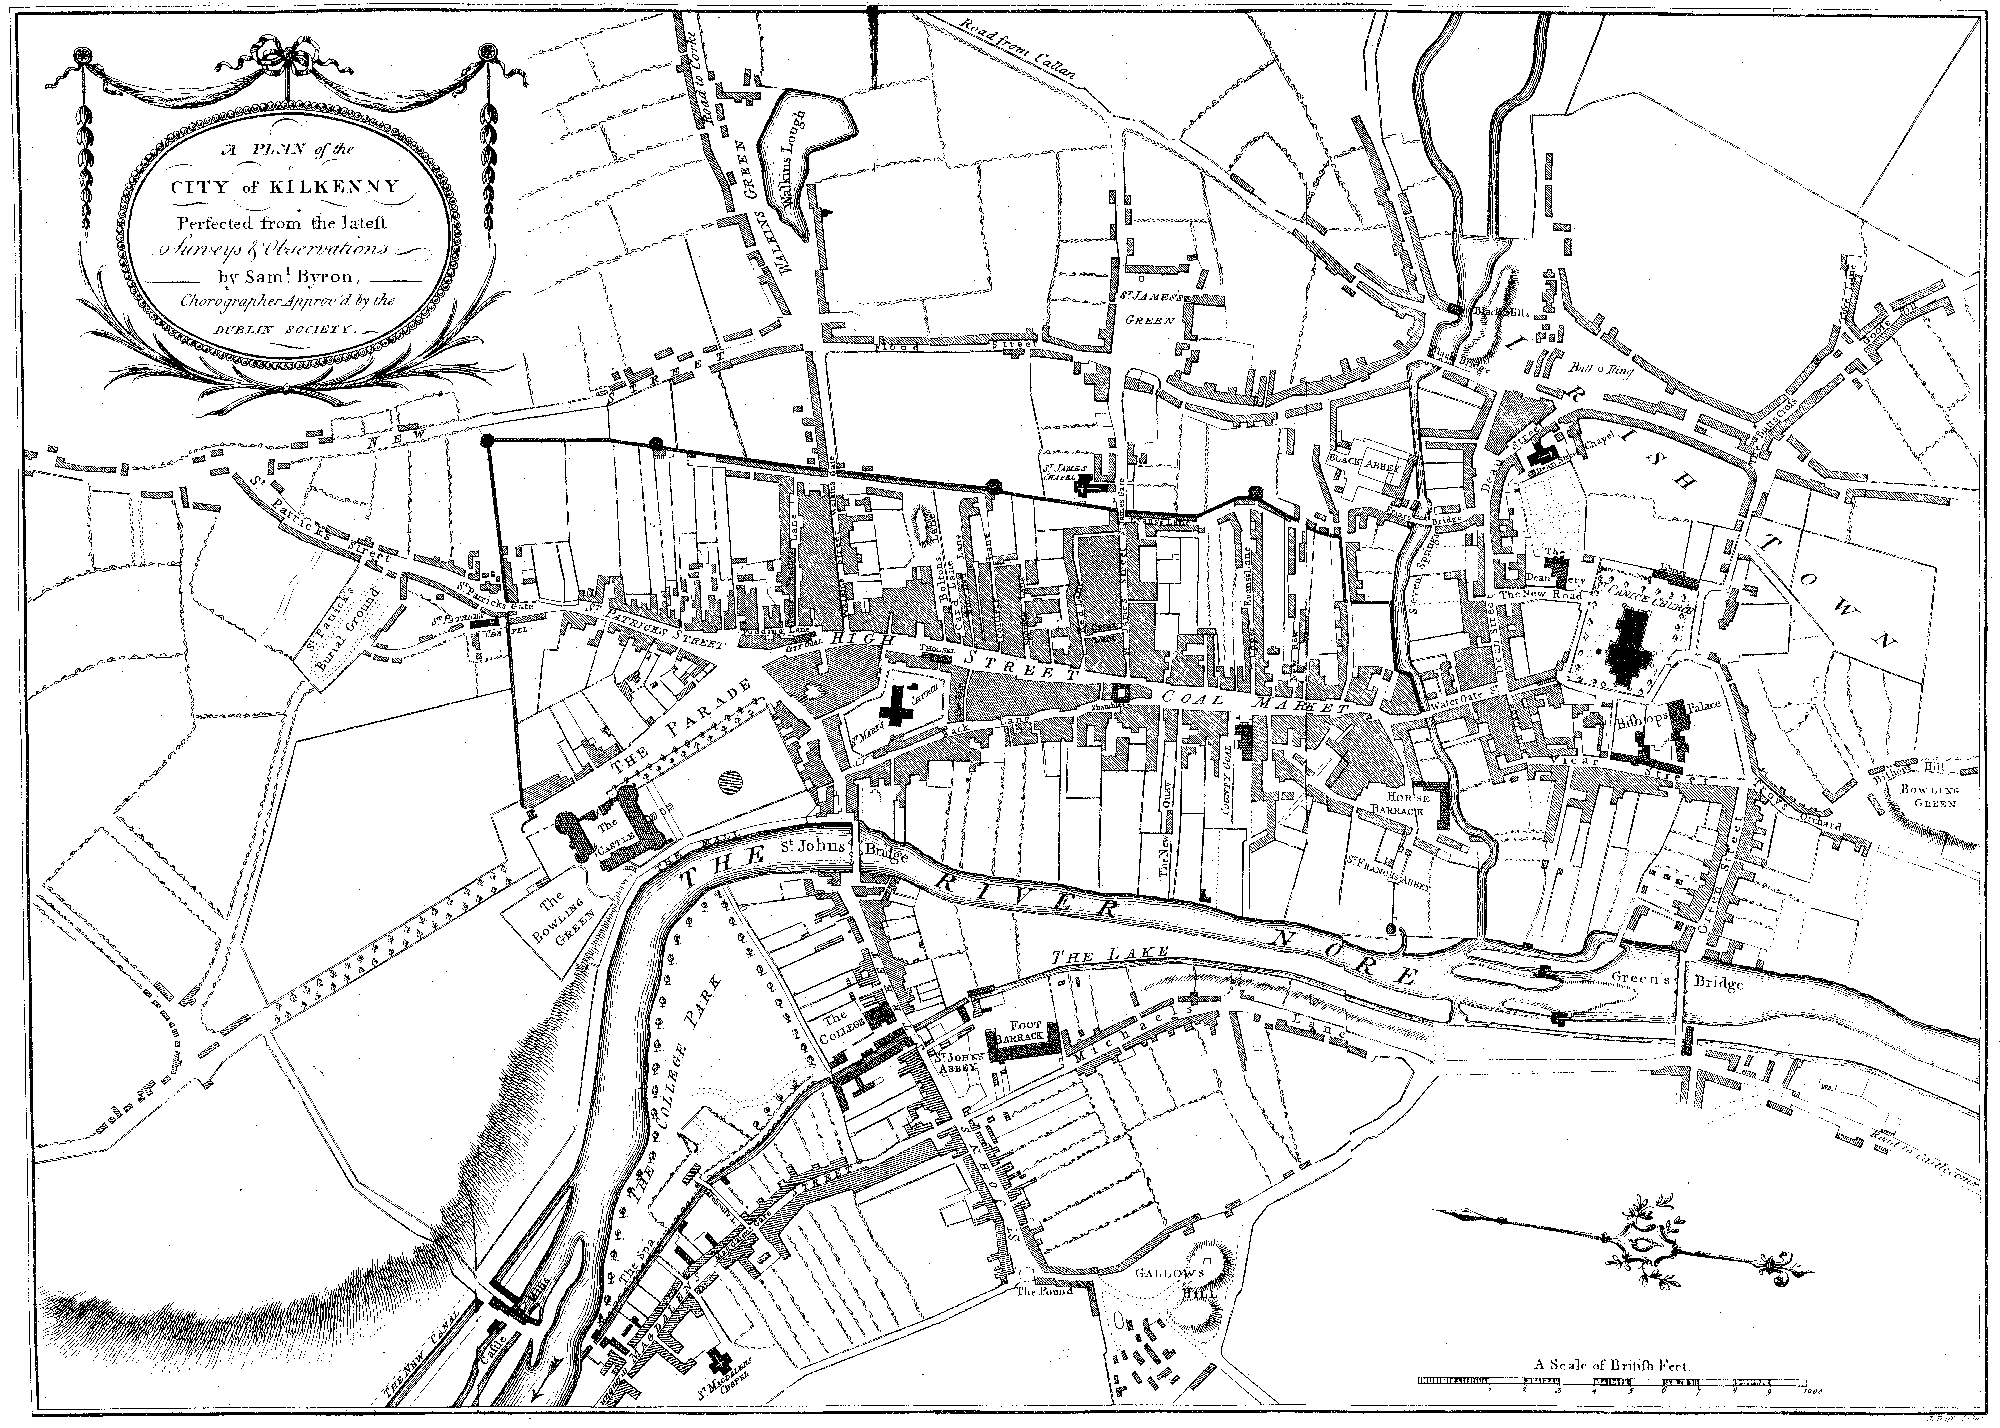 File:Small Kilkenny city map circa 1780 (2006.